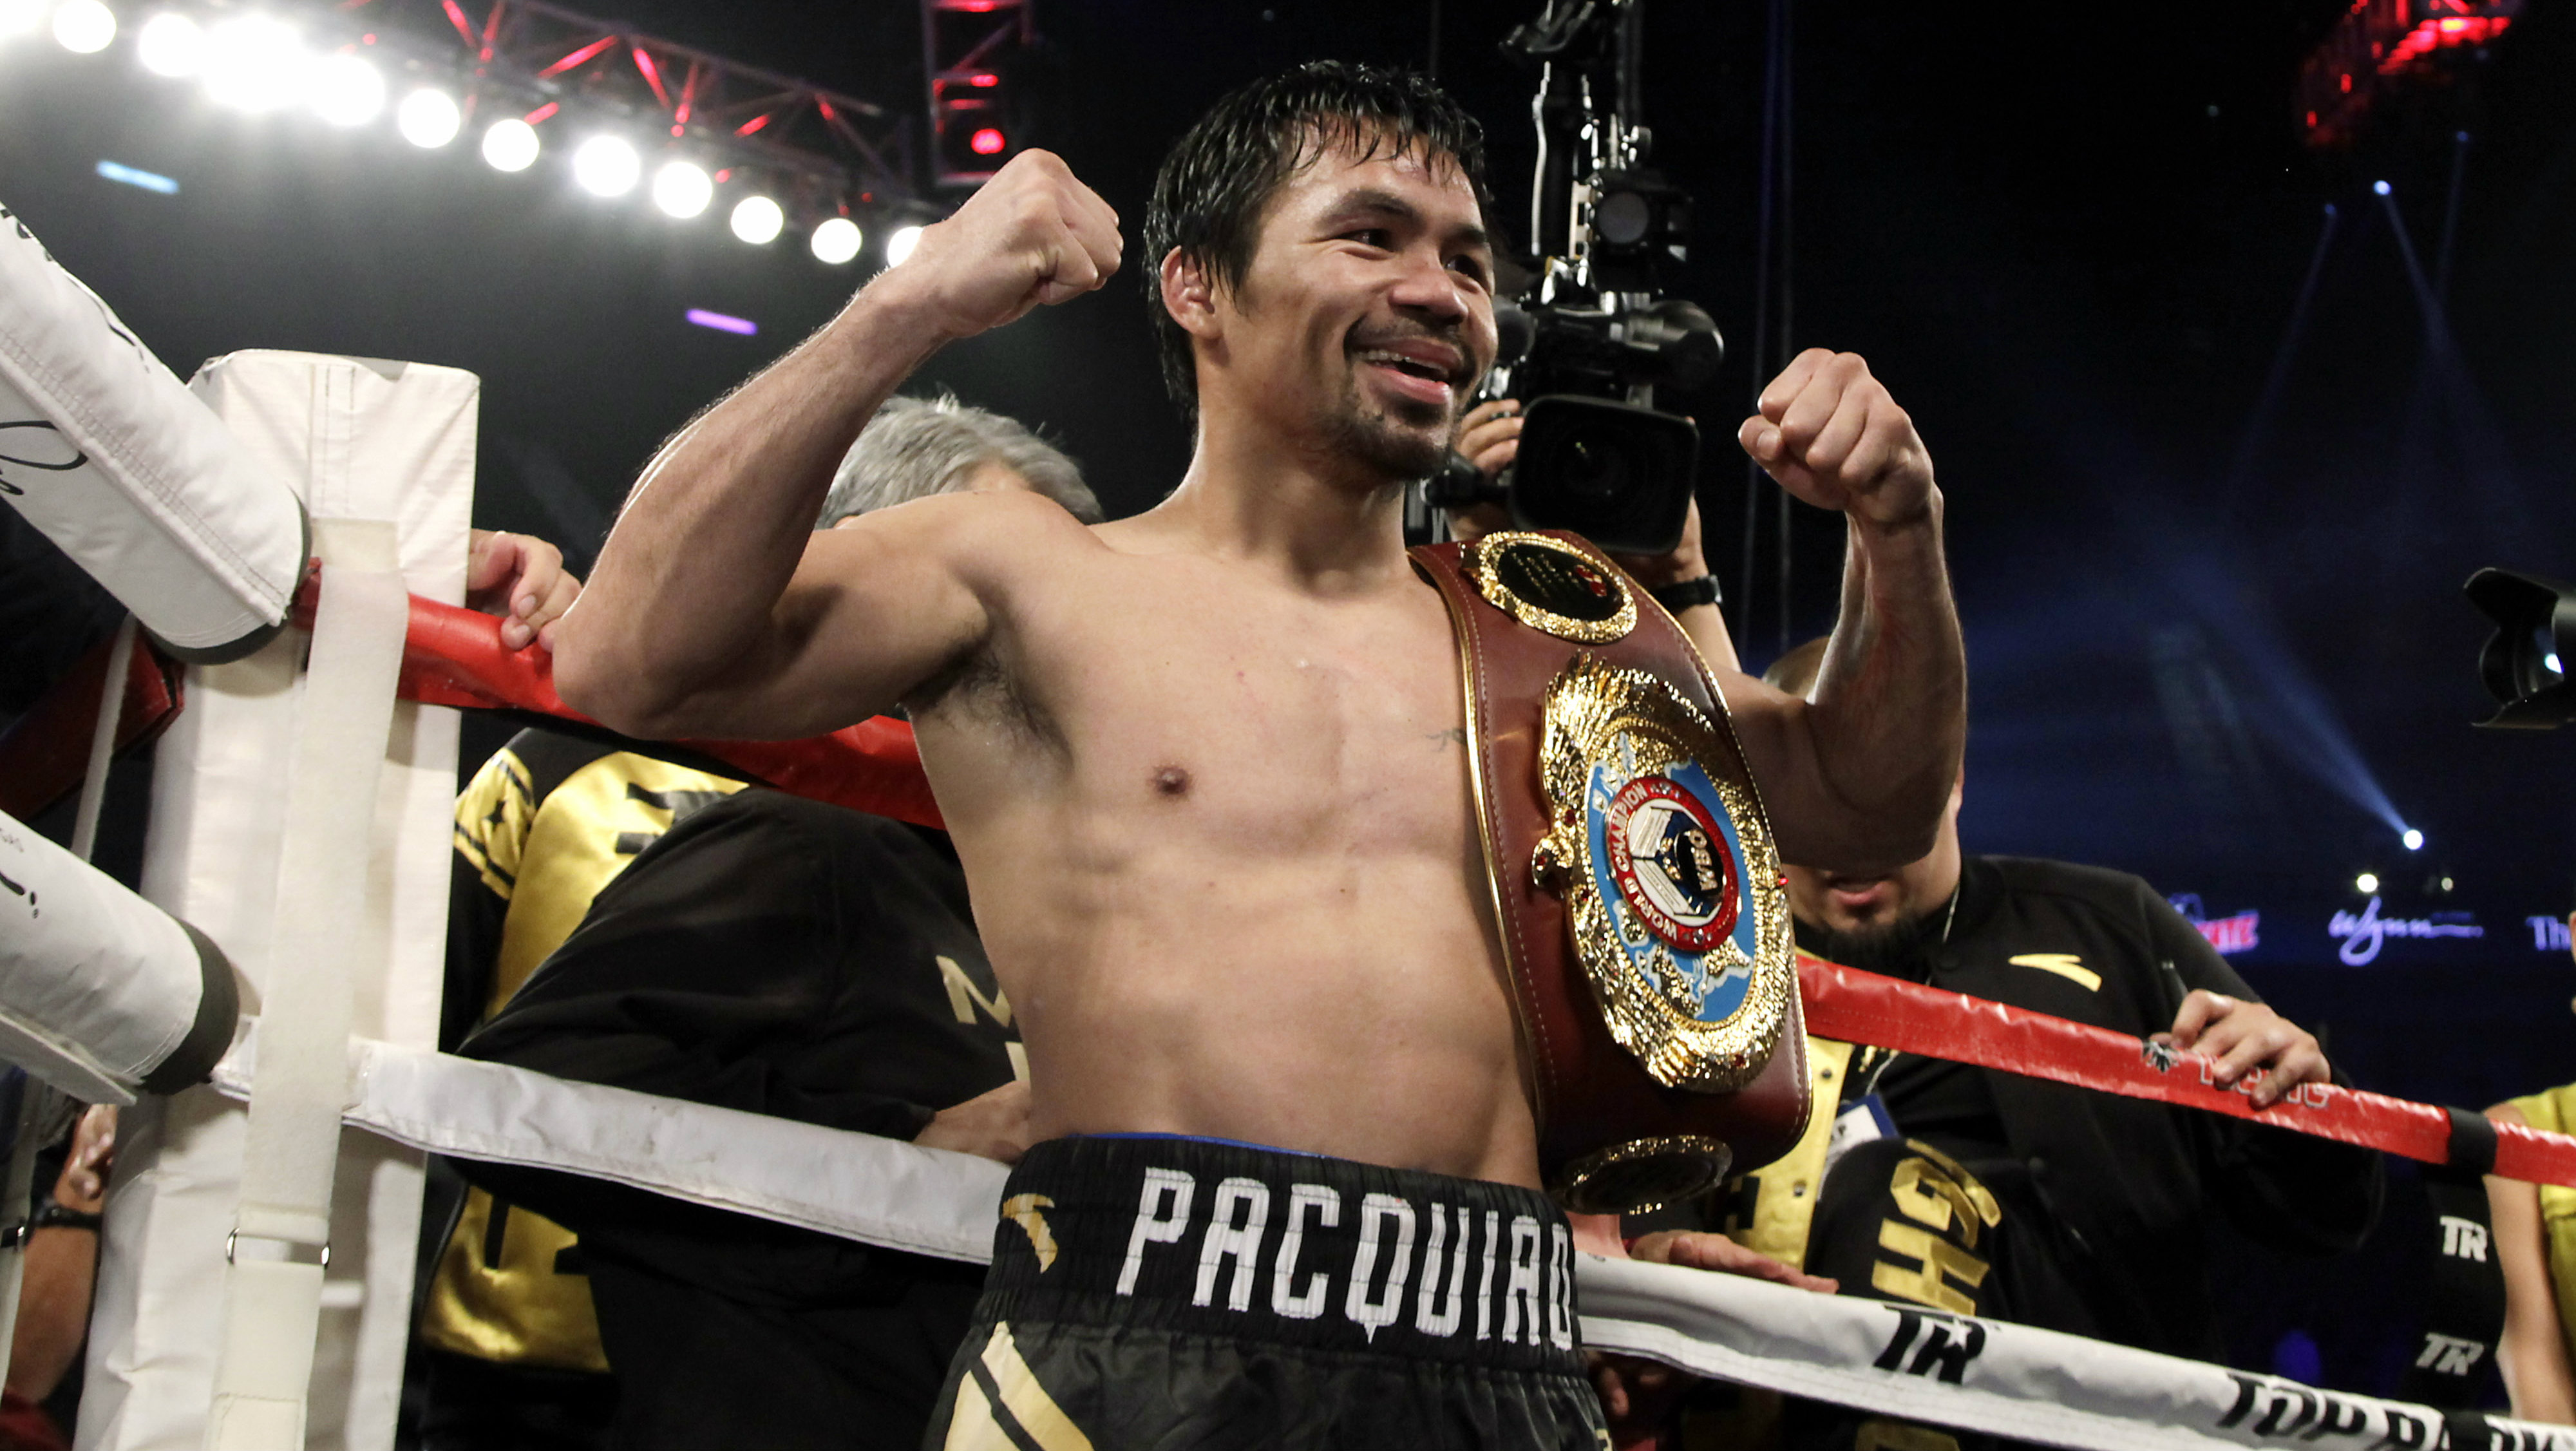 Pacquiao asks fans whom he should fight next